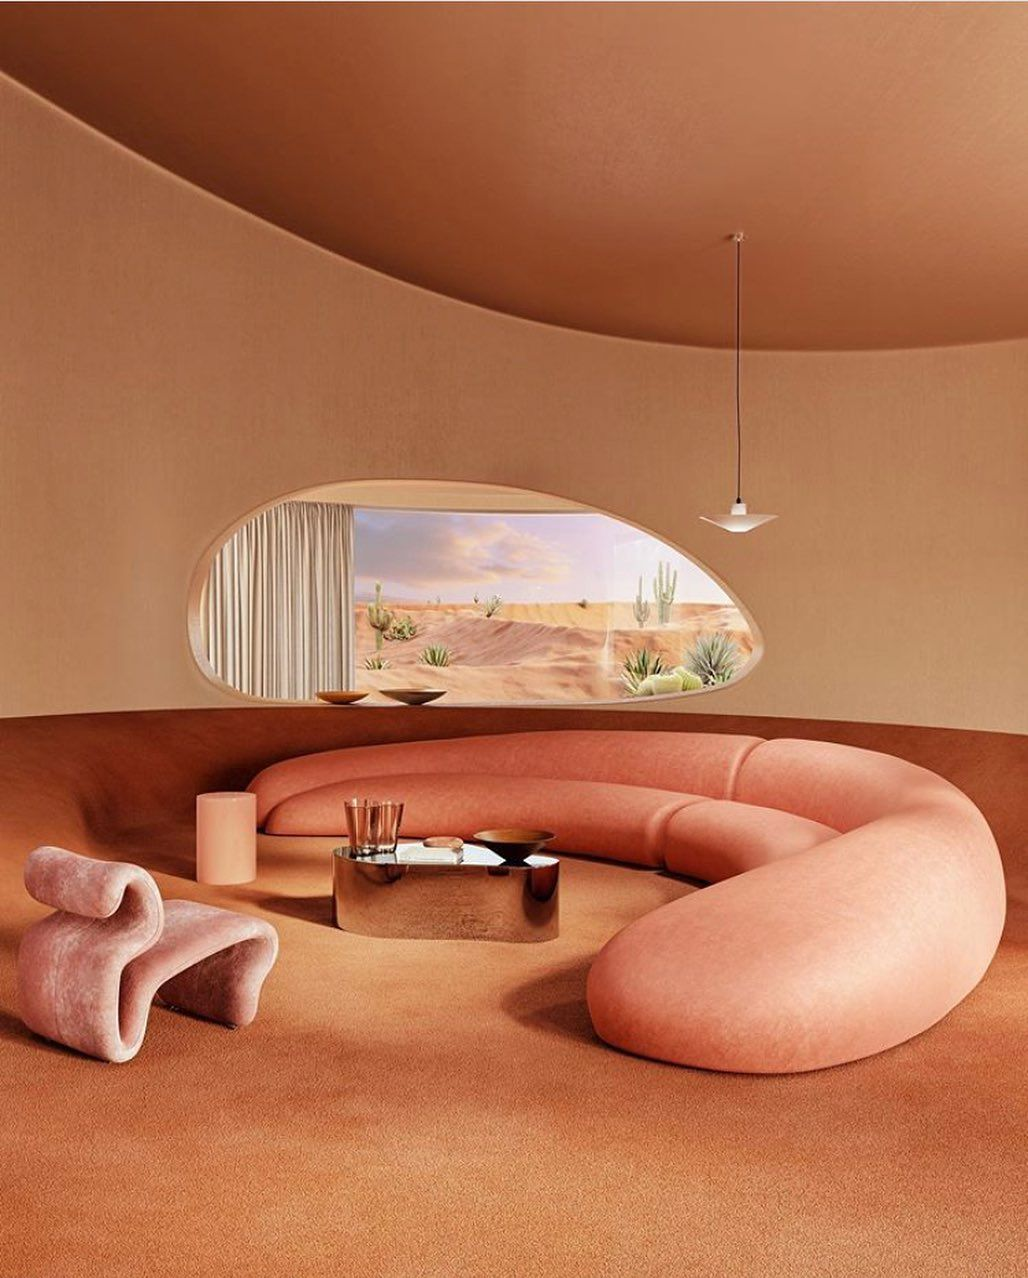 """Photo of Sitio on Instagram: """"Featuring a space designed completely from organic shapes, Nova Visualis and Charlotte Taylor have created a lounge area that draws in the…"""""""